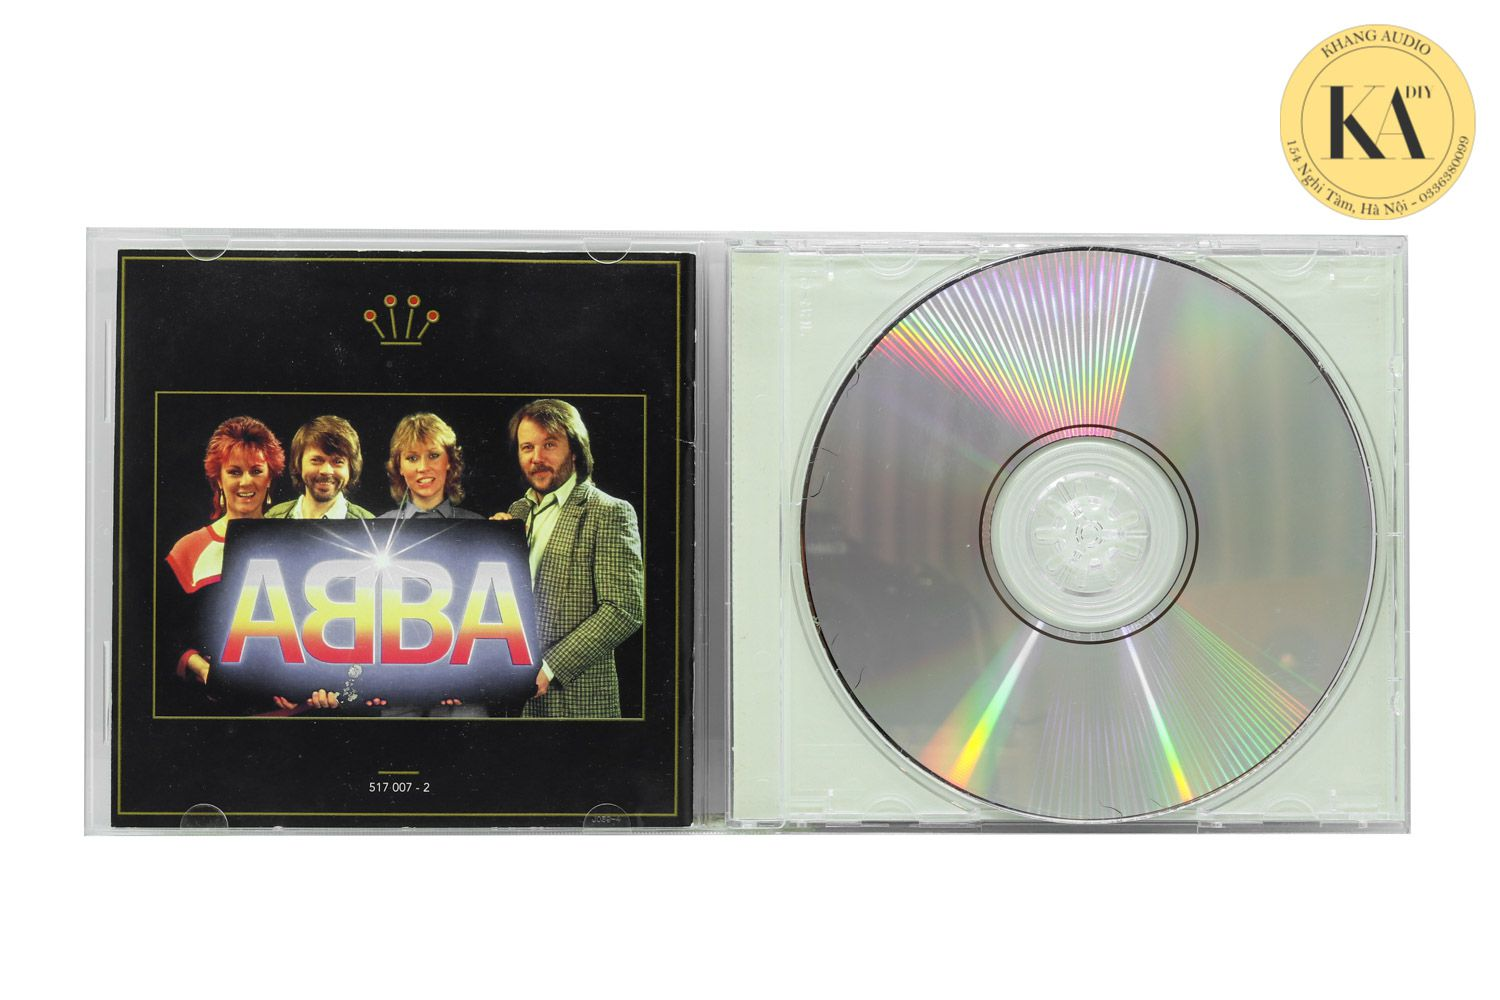 ABBA GOLD - Greatest Hits Khang Audio 0336380099